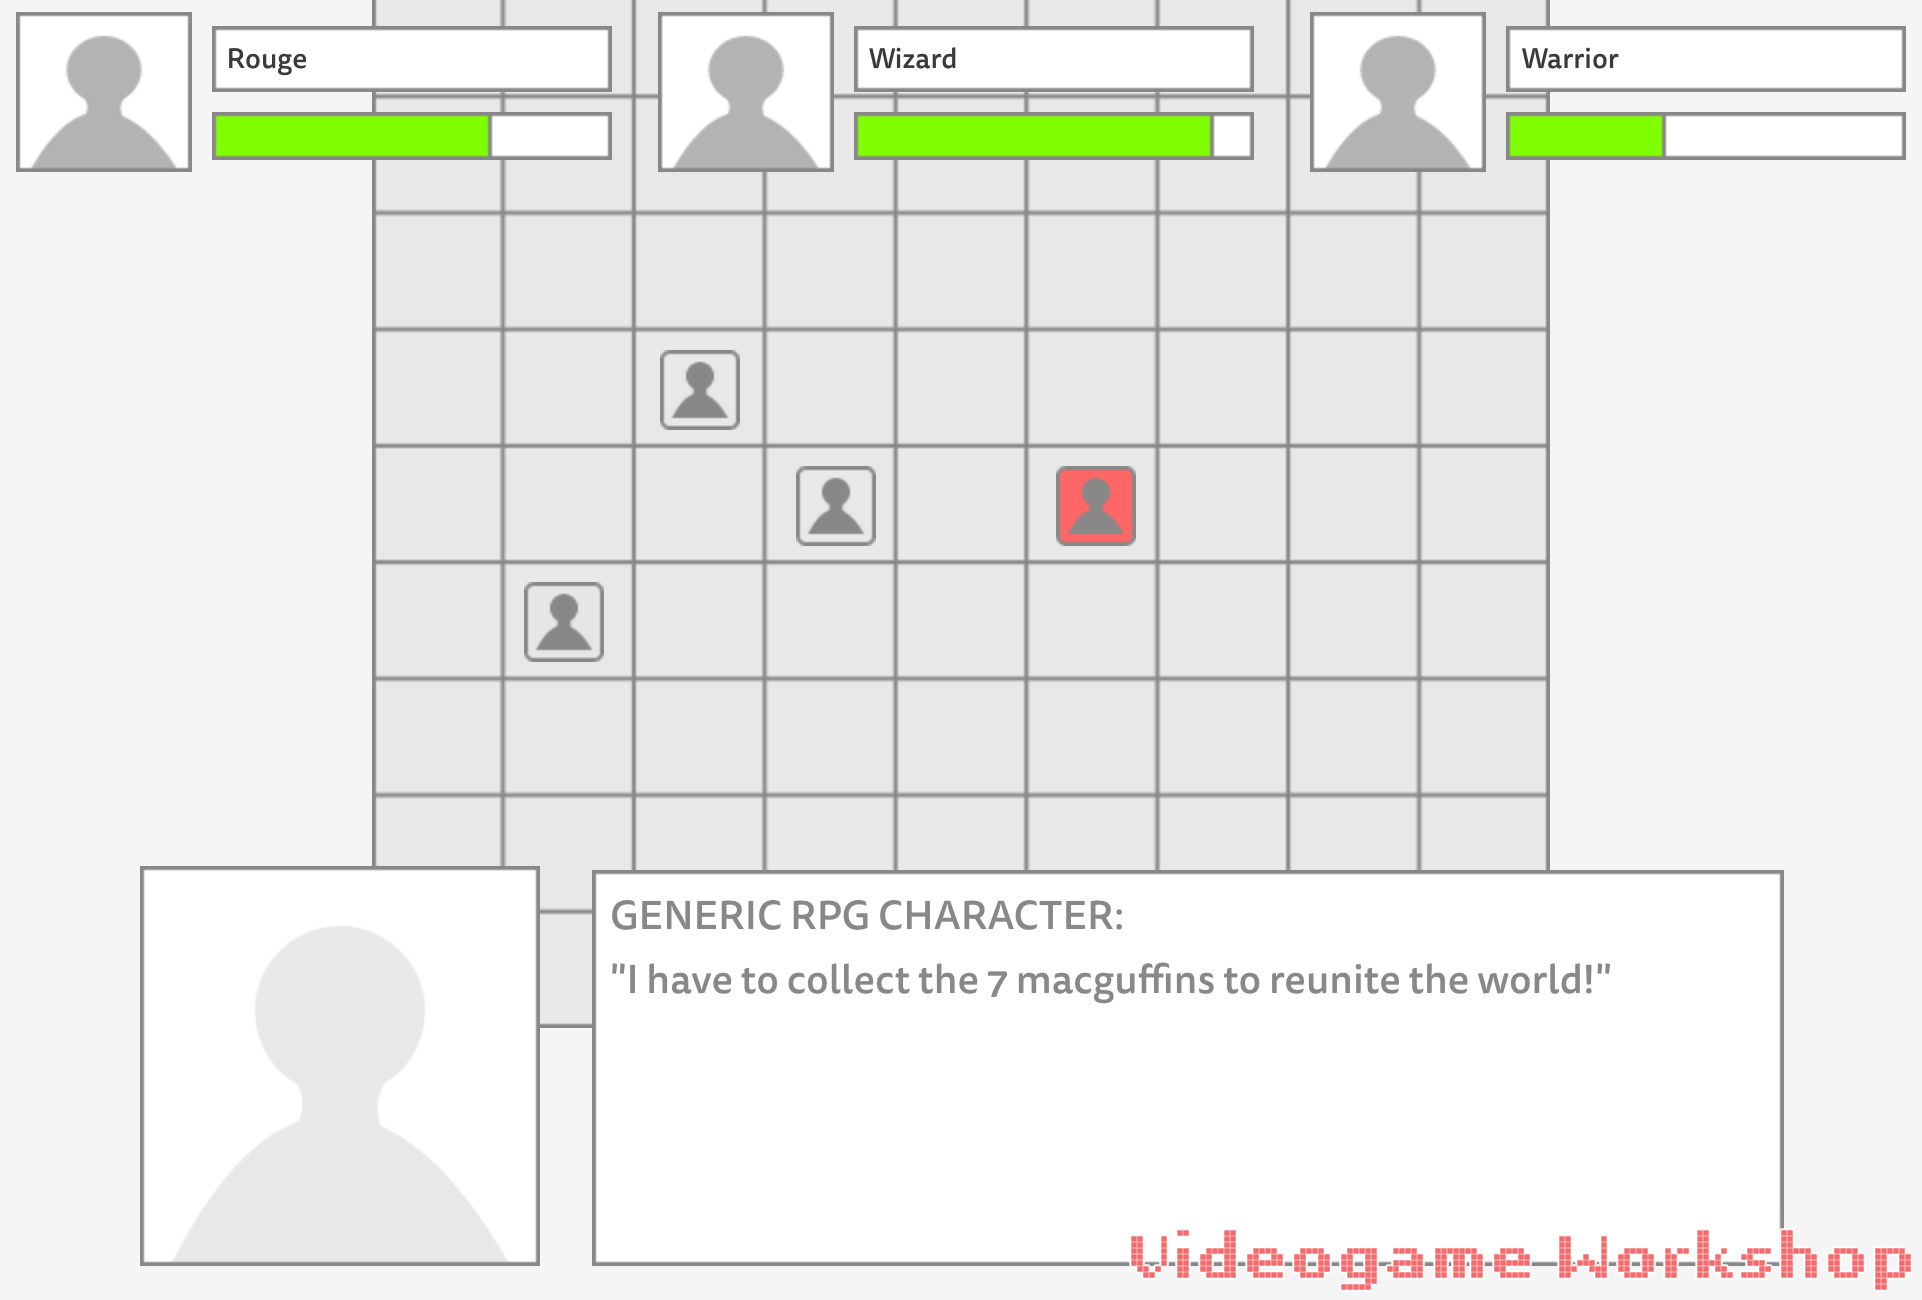 Image of a wireframe for a generic tactical RPG